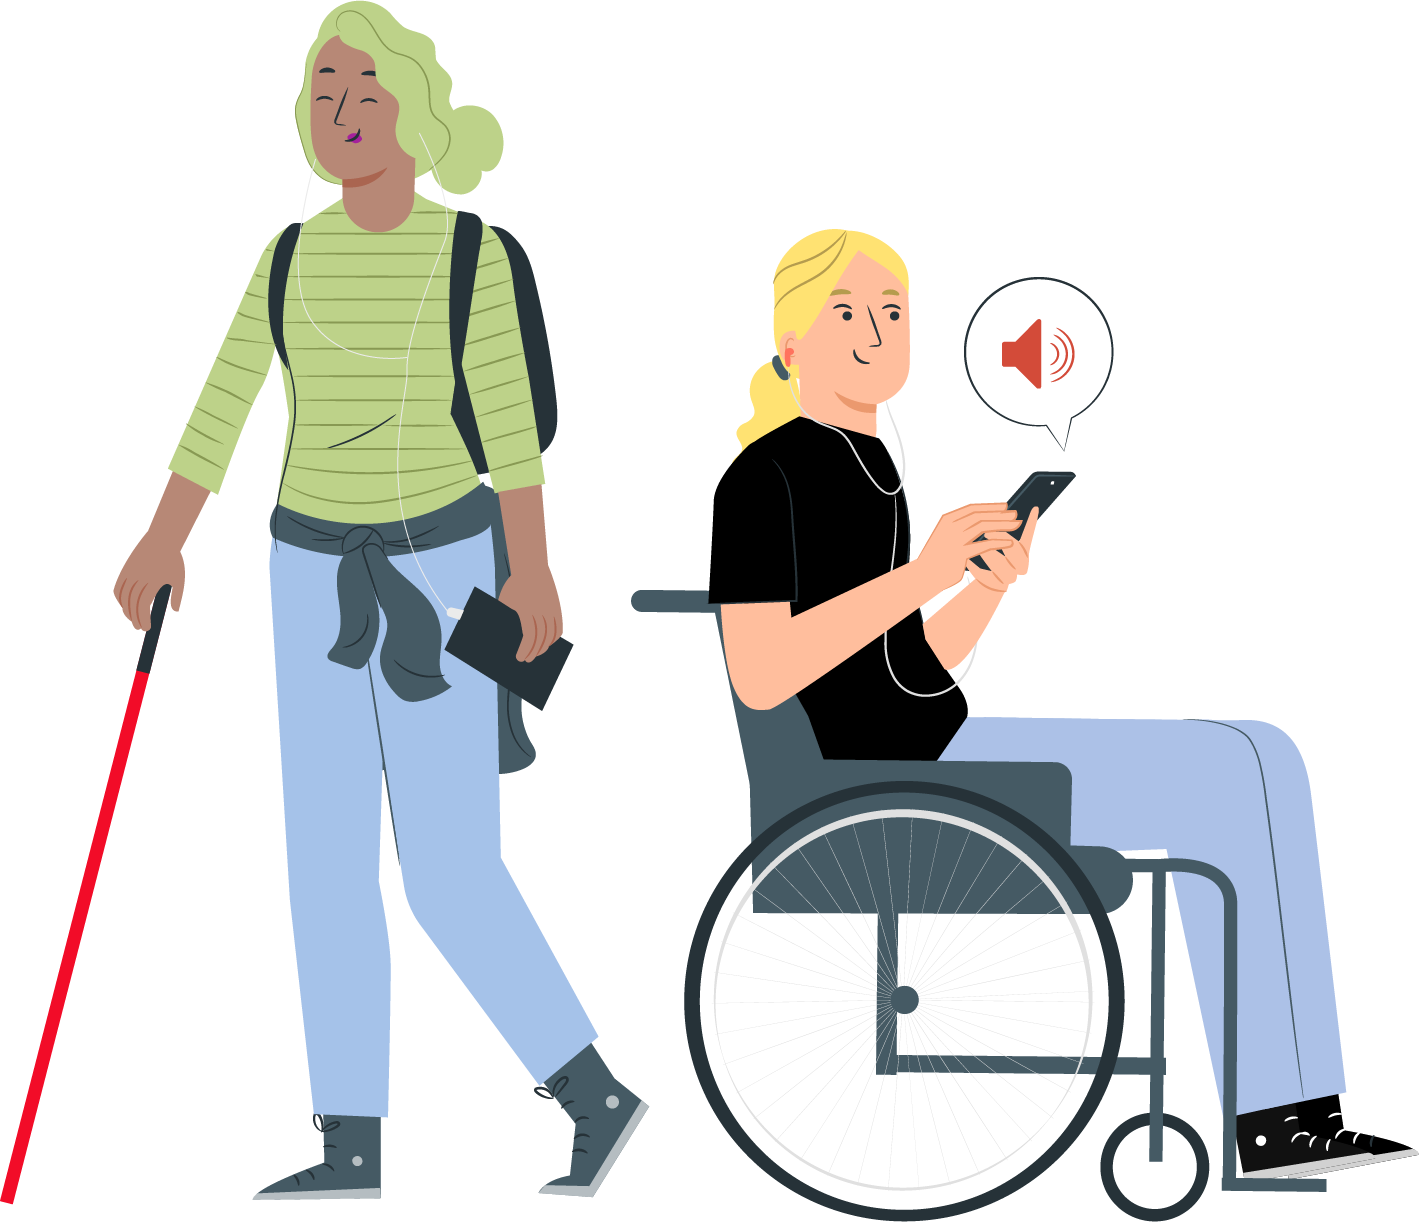 A woman using a walking cane stands beside a woman using a wheelchair